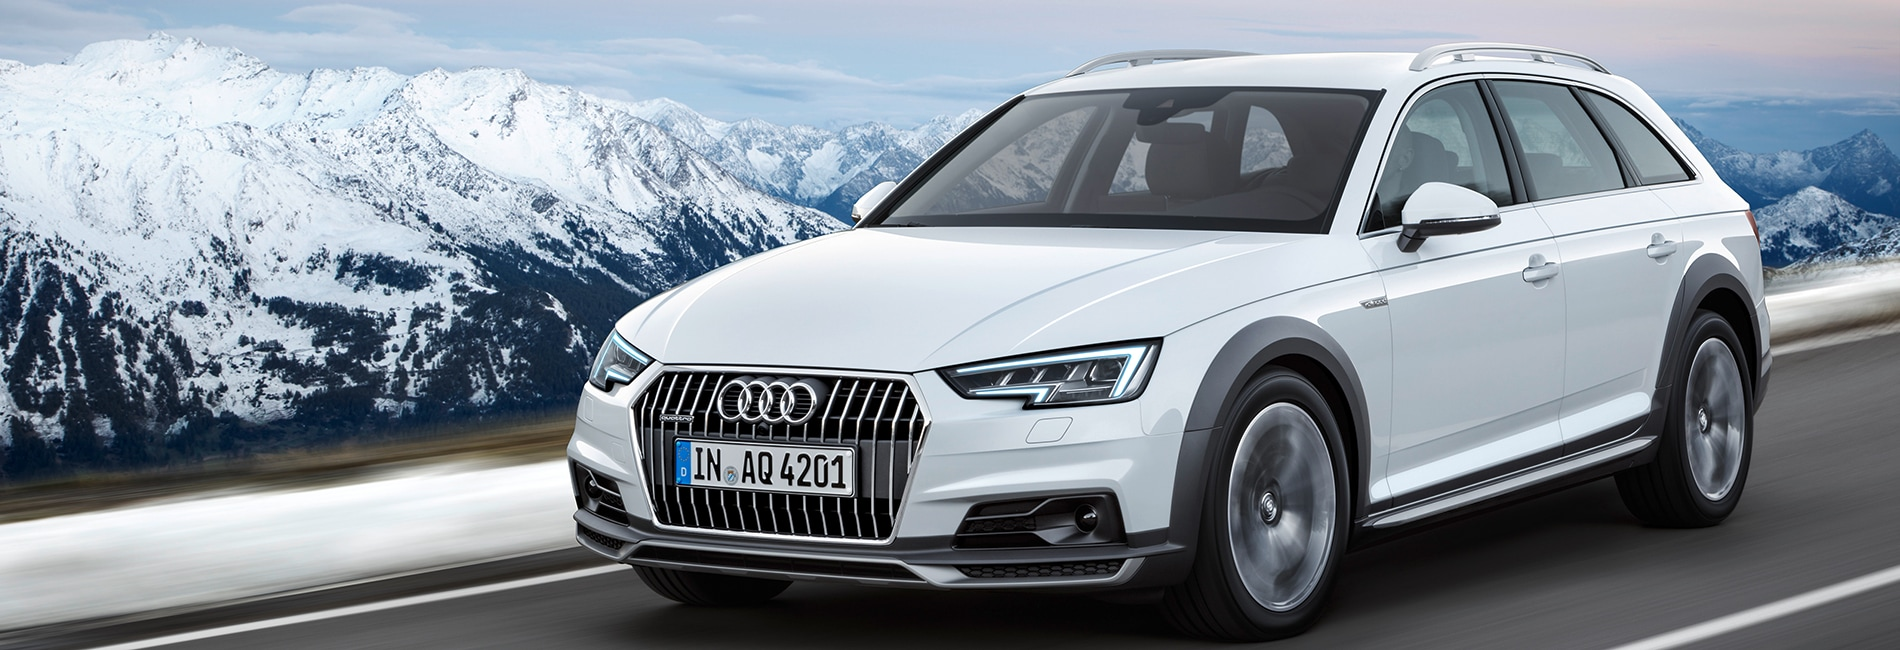 Audi A4 Allroad Exterior Vehicle Features